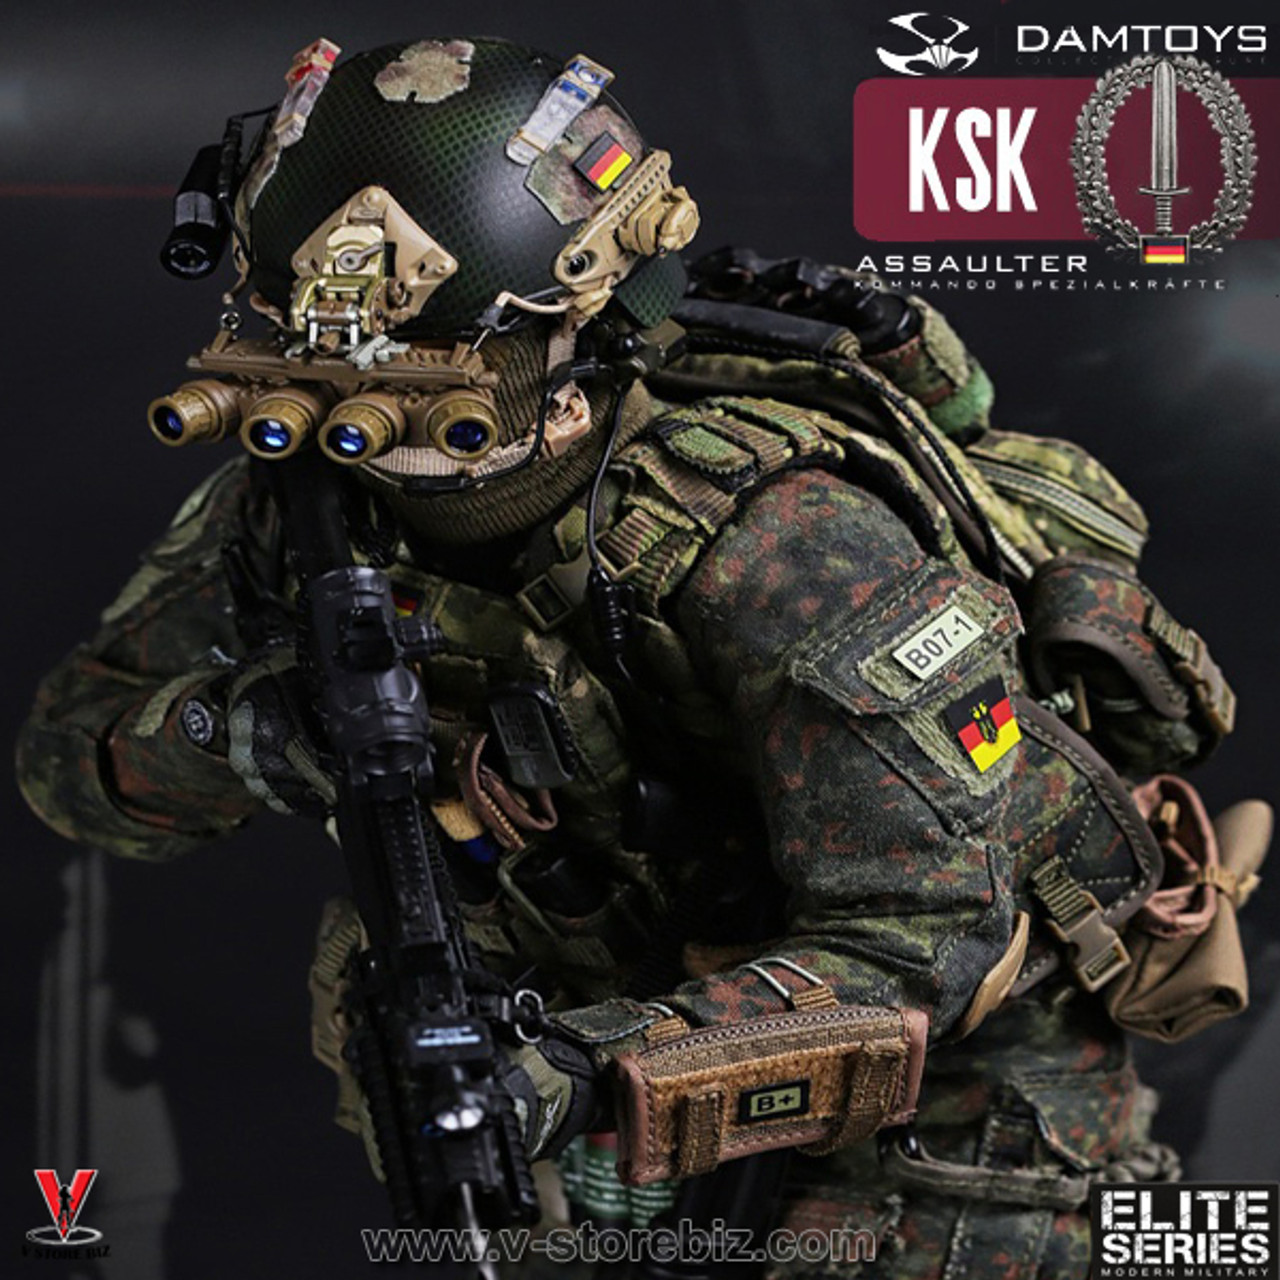 Damtoys Action Figures GPS /& Body Light KSK Assaulter 1//6 Scale